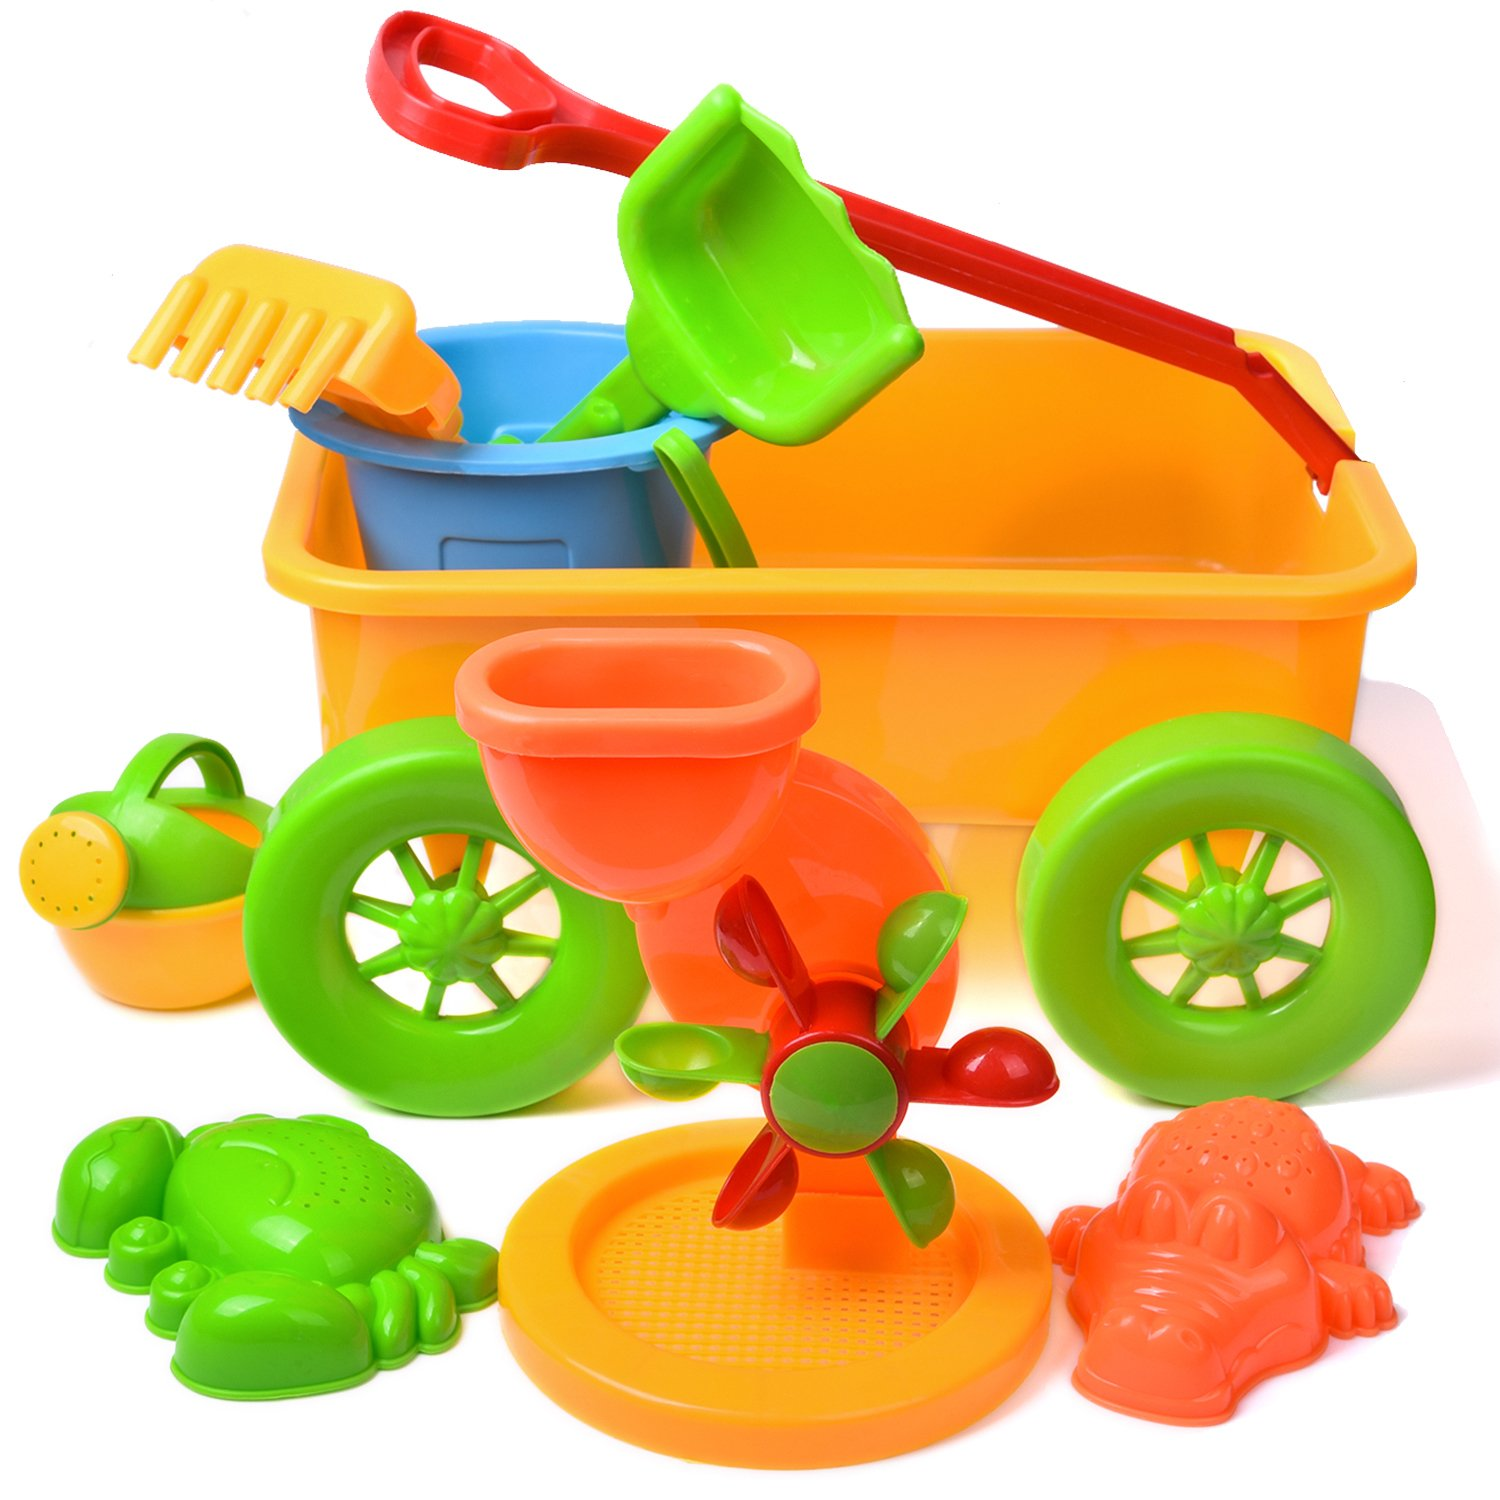 Beach Wagon Toys Set for Kids, Sand Toys Kids Outdoor Toys, Sandbox Toys Set with Big Sand Wagon and Other Beach Toys - 8 PCs by FUN LITTLE TOYS